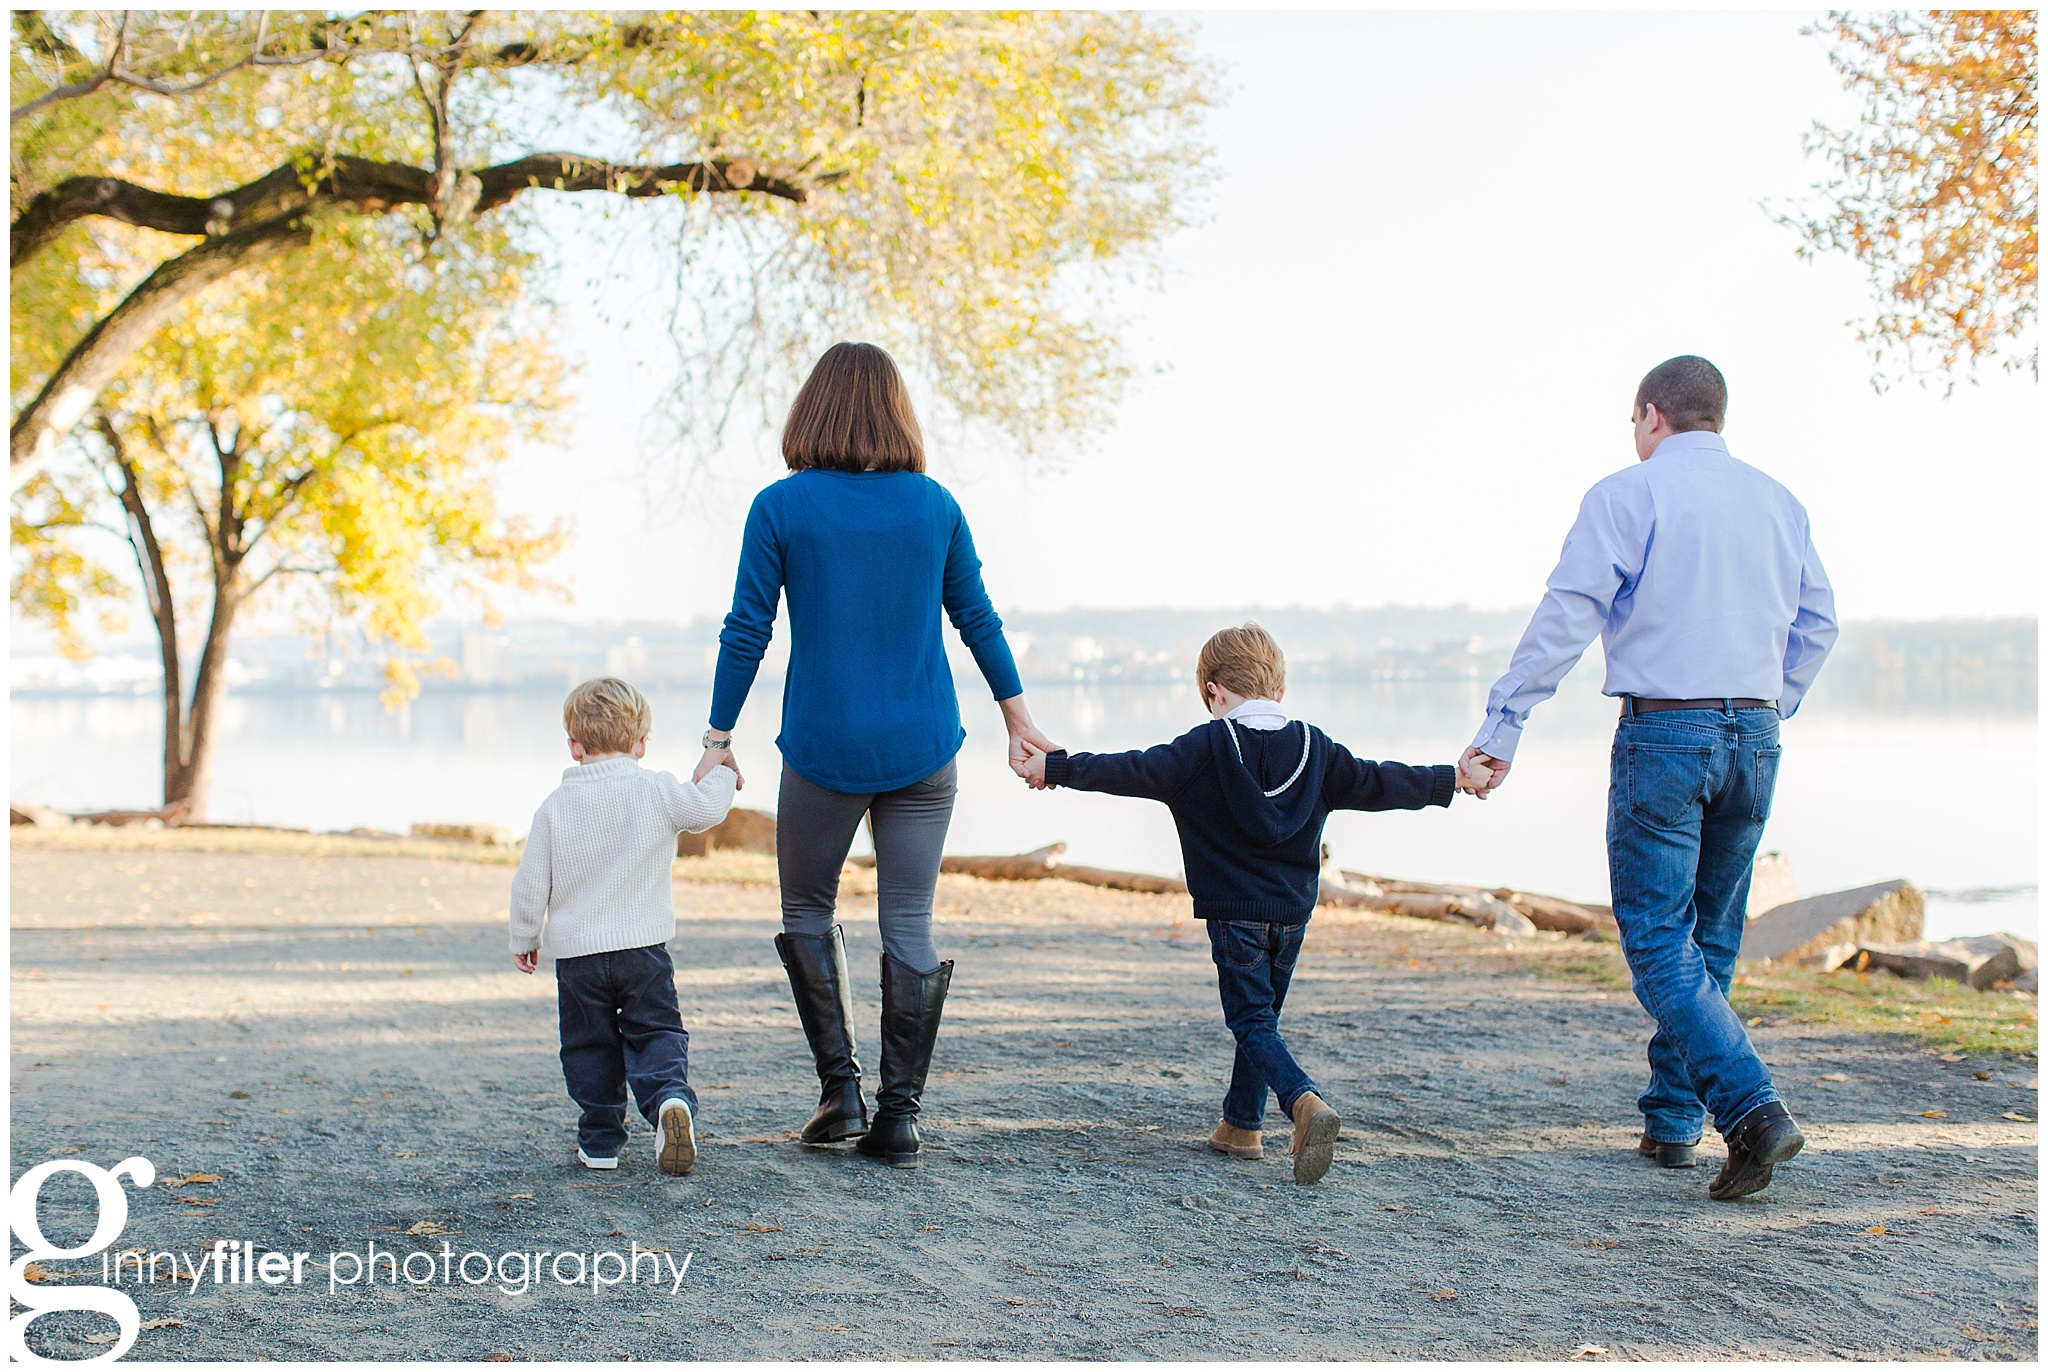 family_photography_riedy_0024.jpg